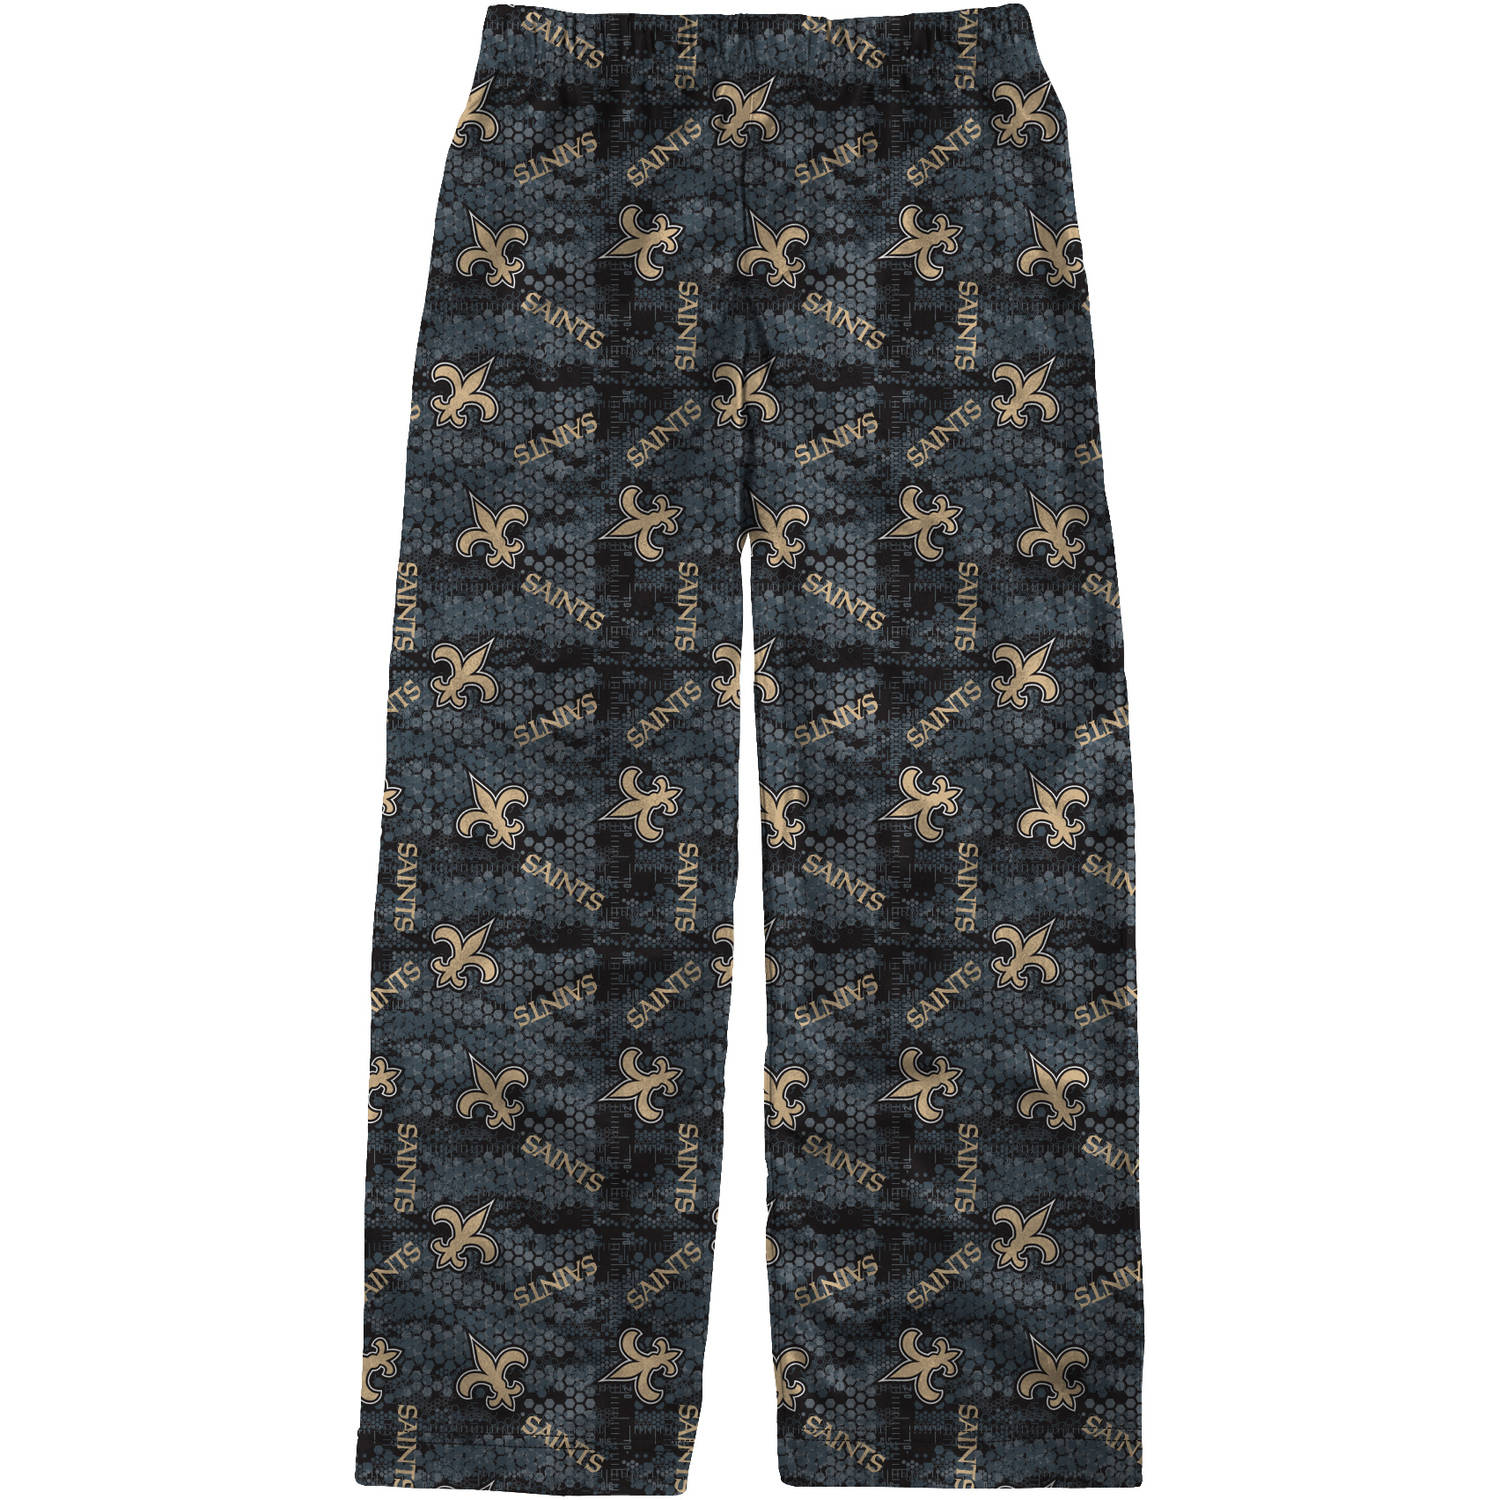 NFL New Orleans Saints Youth Lounge Pant